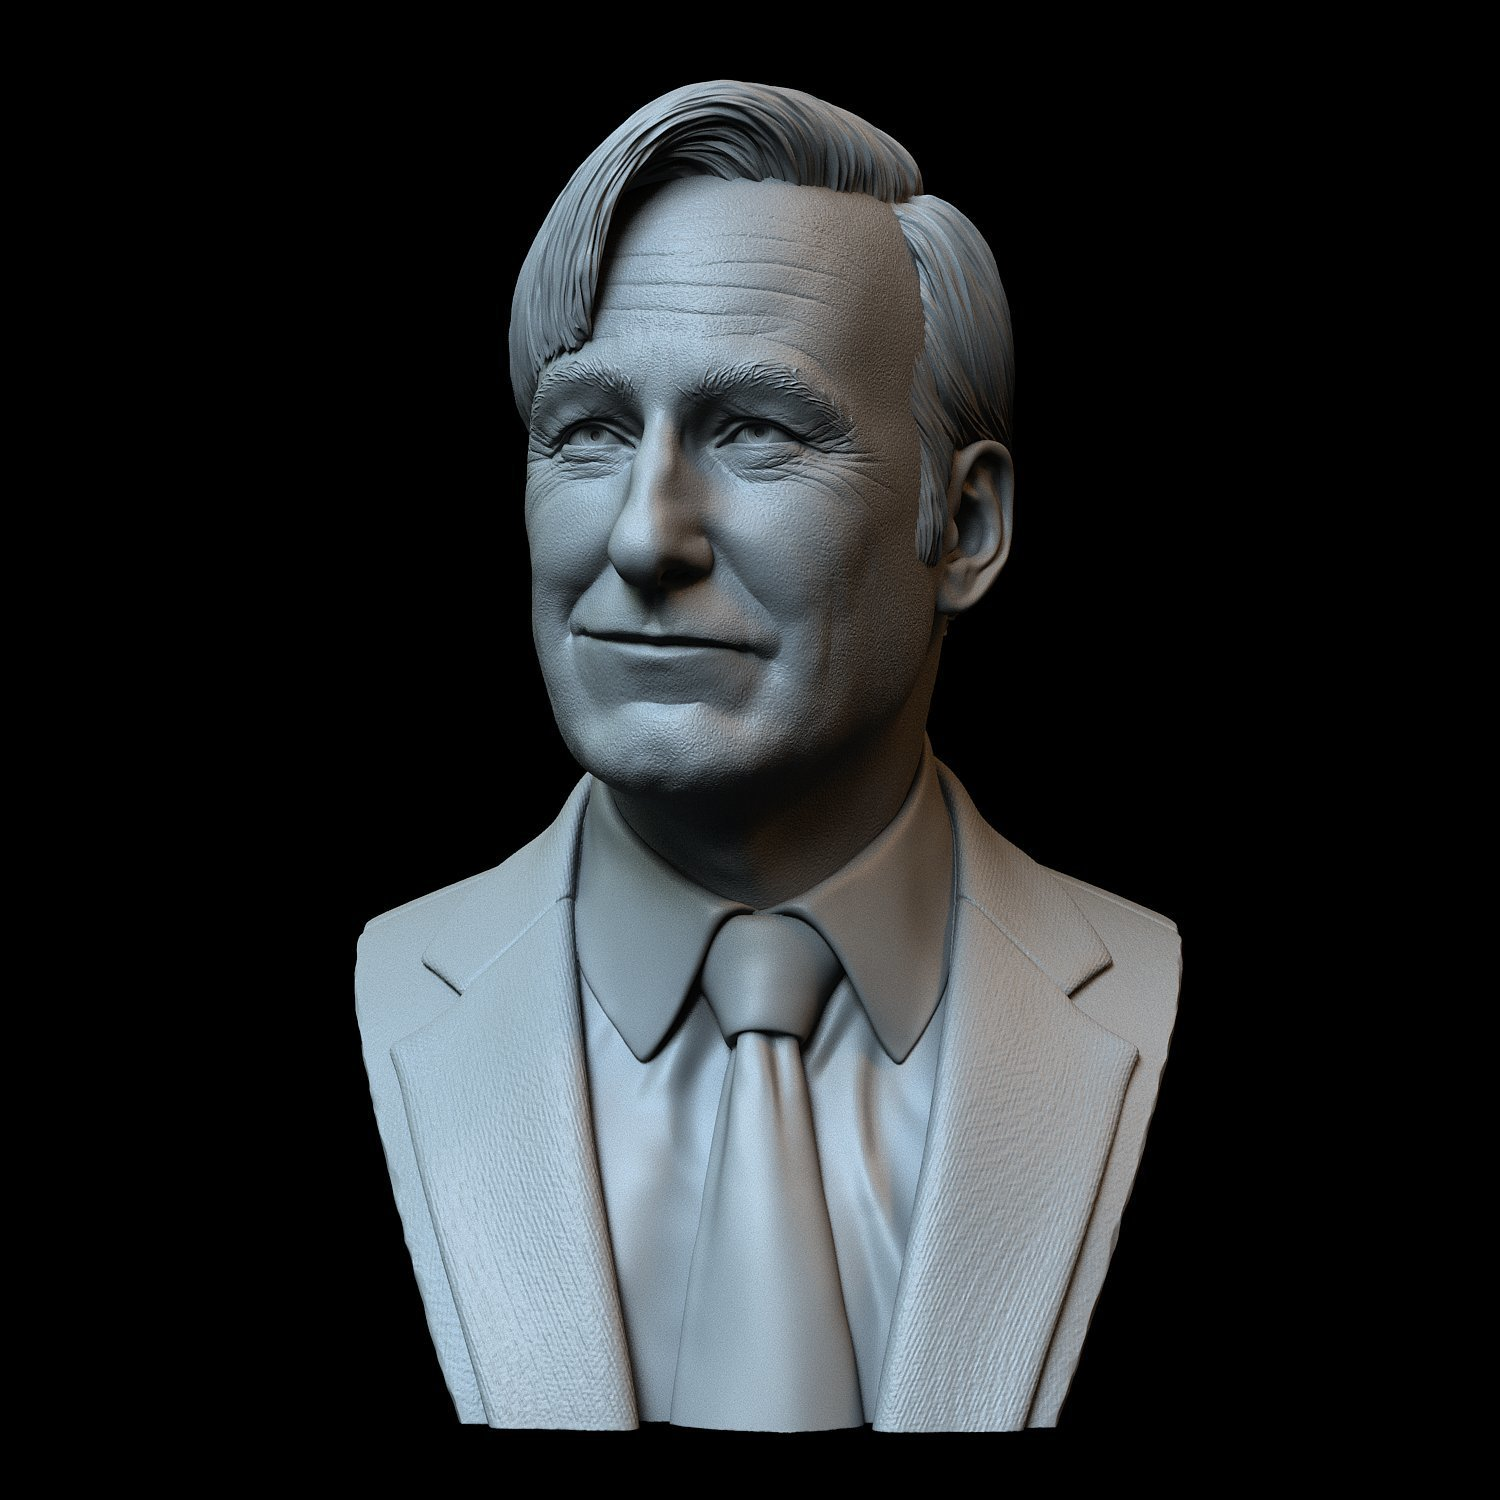 Saul03.jpg Download STL file Saul Goodman aka Jimmy McGill (Bob Odenkirk) from Breaking Bad and Better Call Saul • Model to 3D print, sidnaique